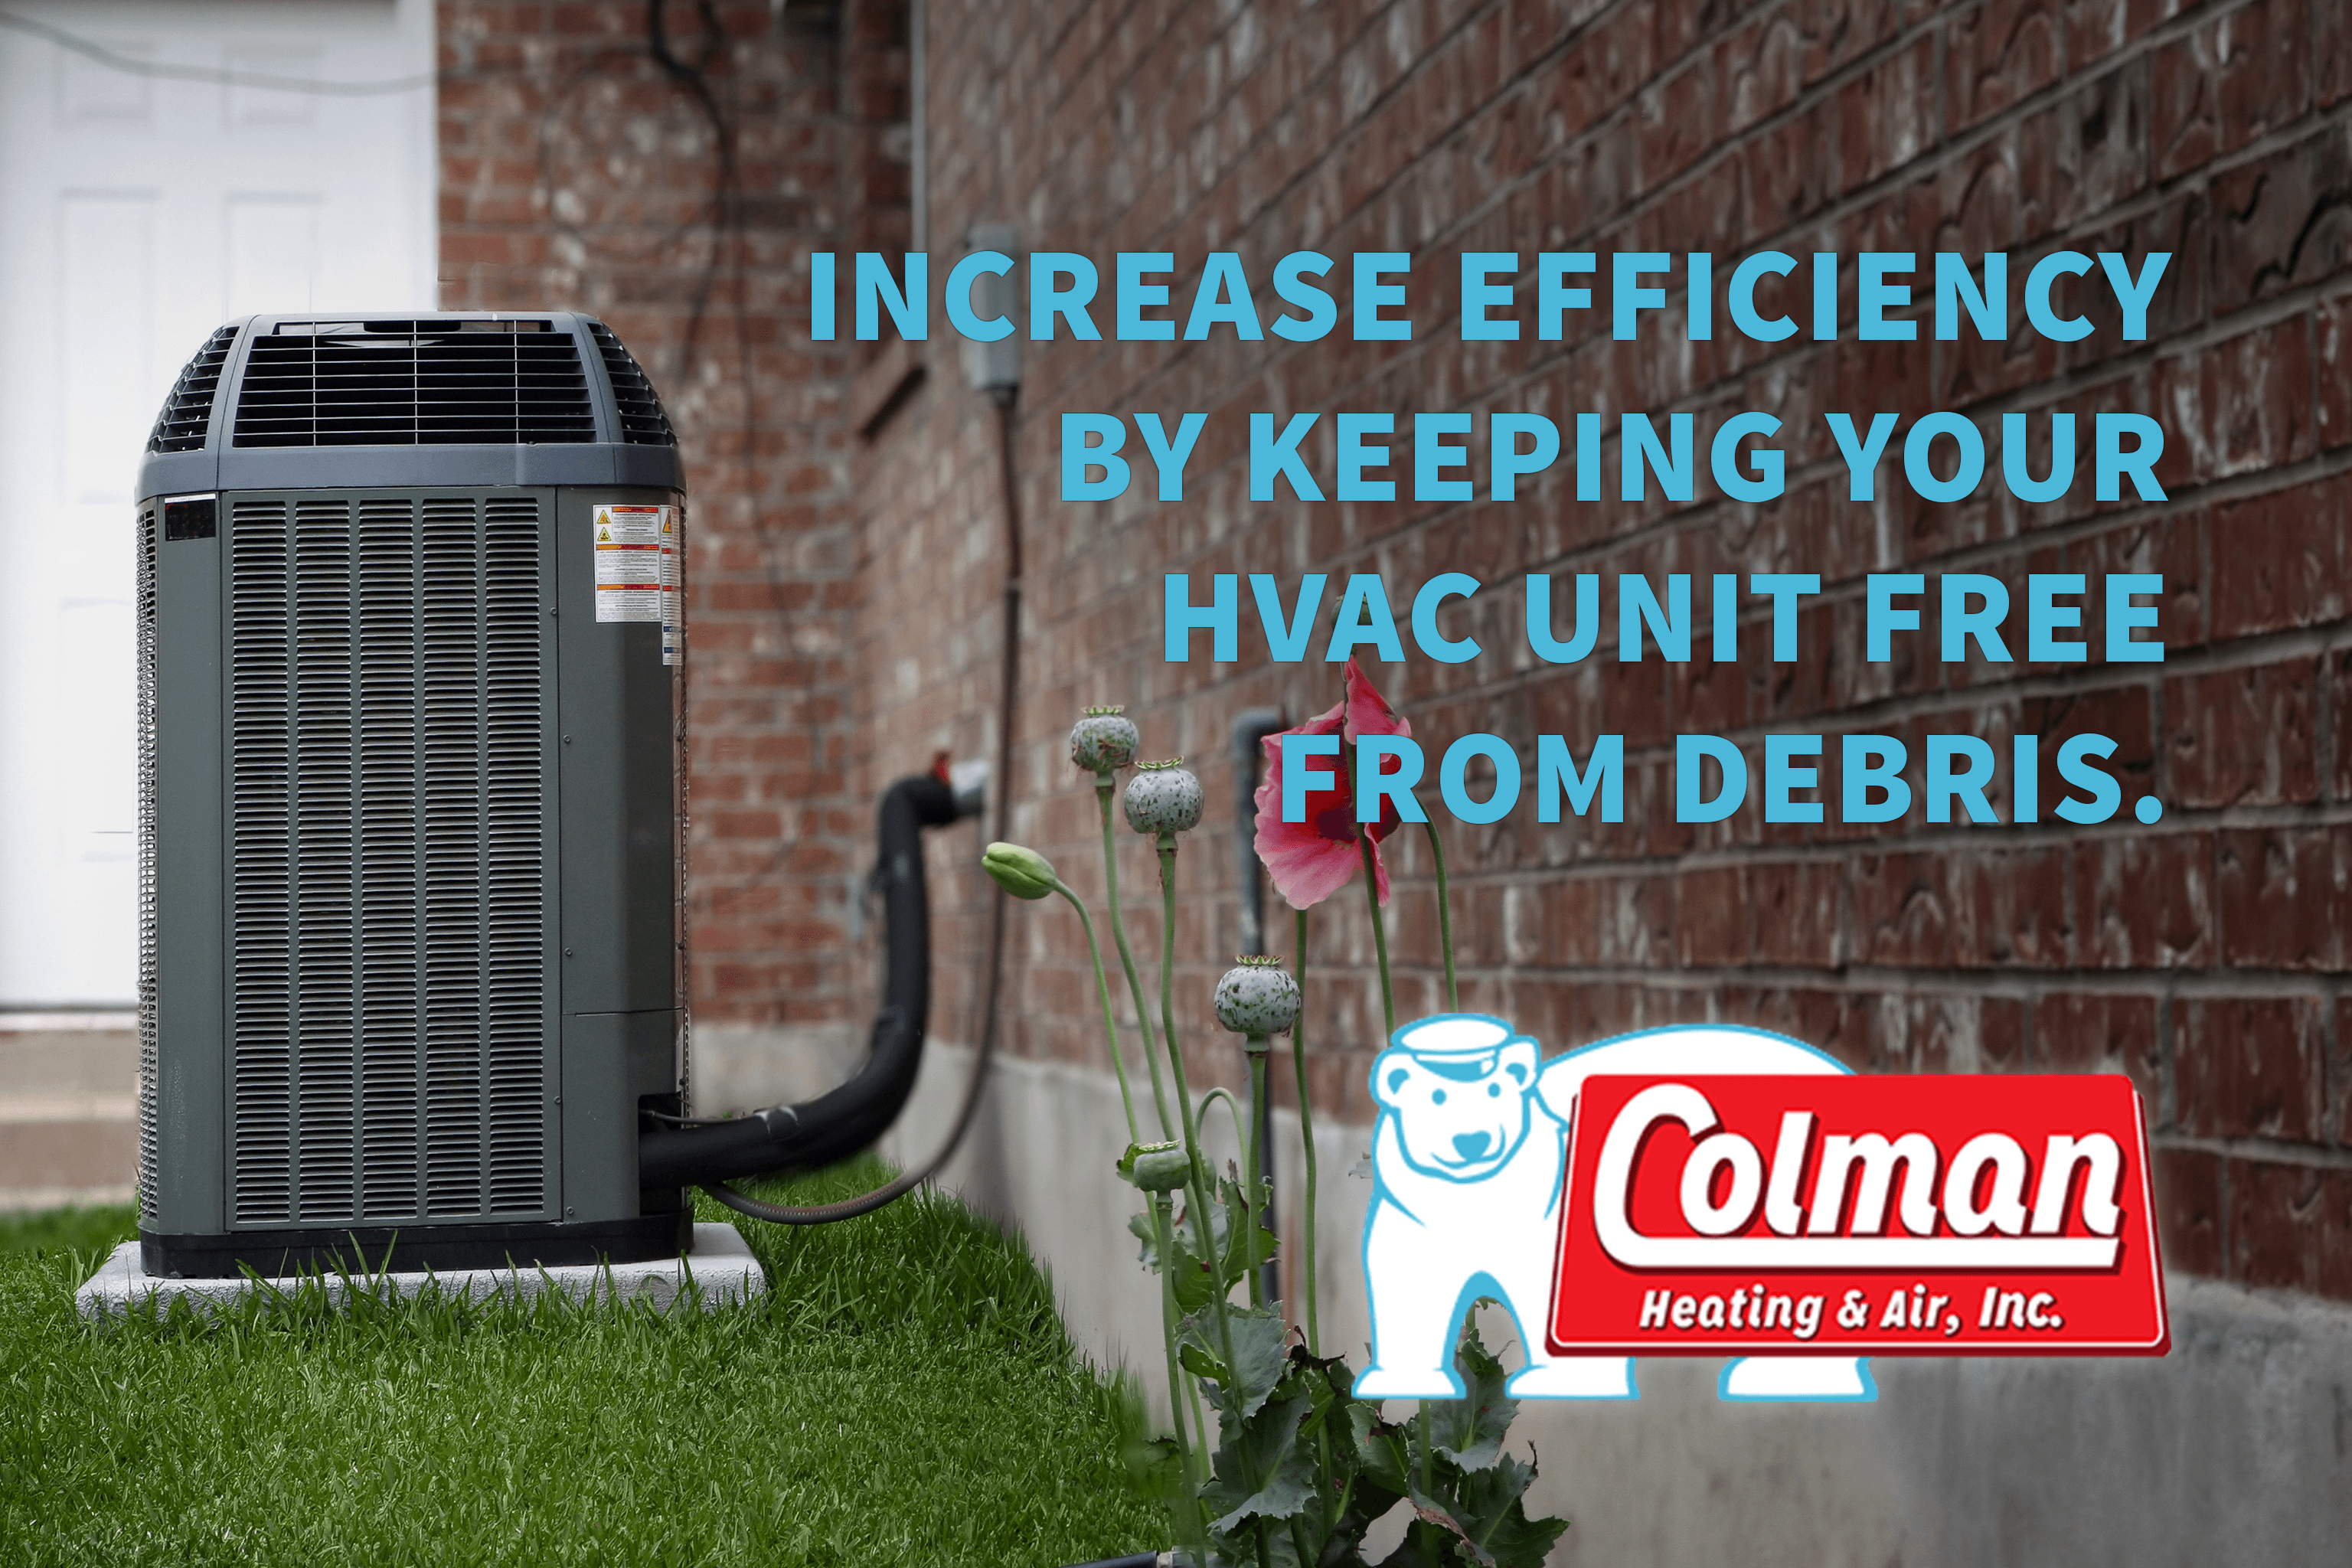 Keep your outdoor AC unit clean by vacuuming and hosing